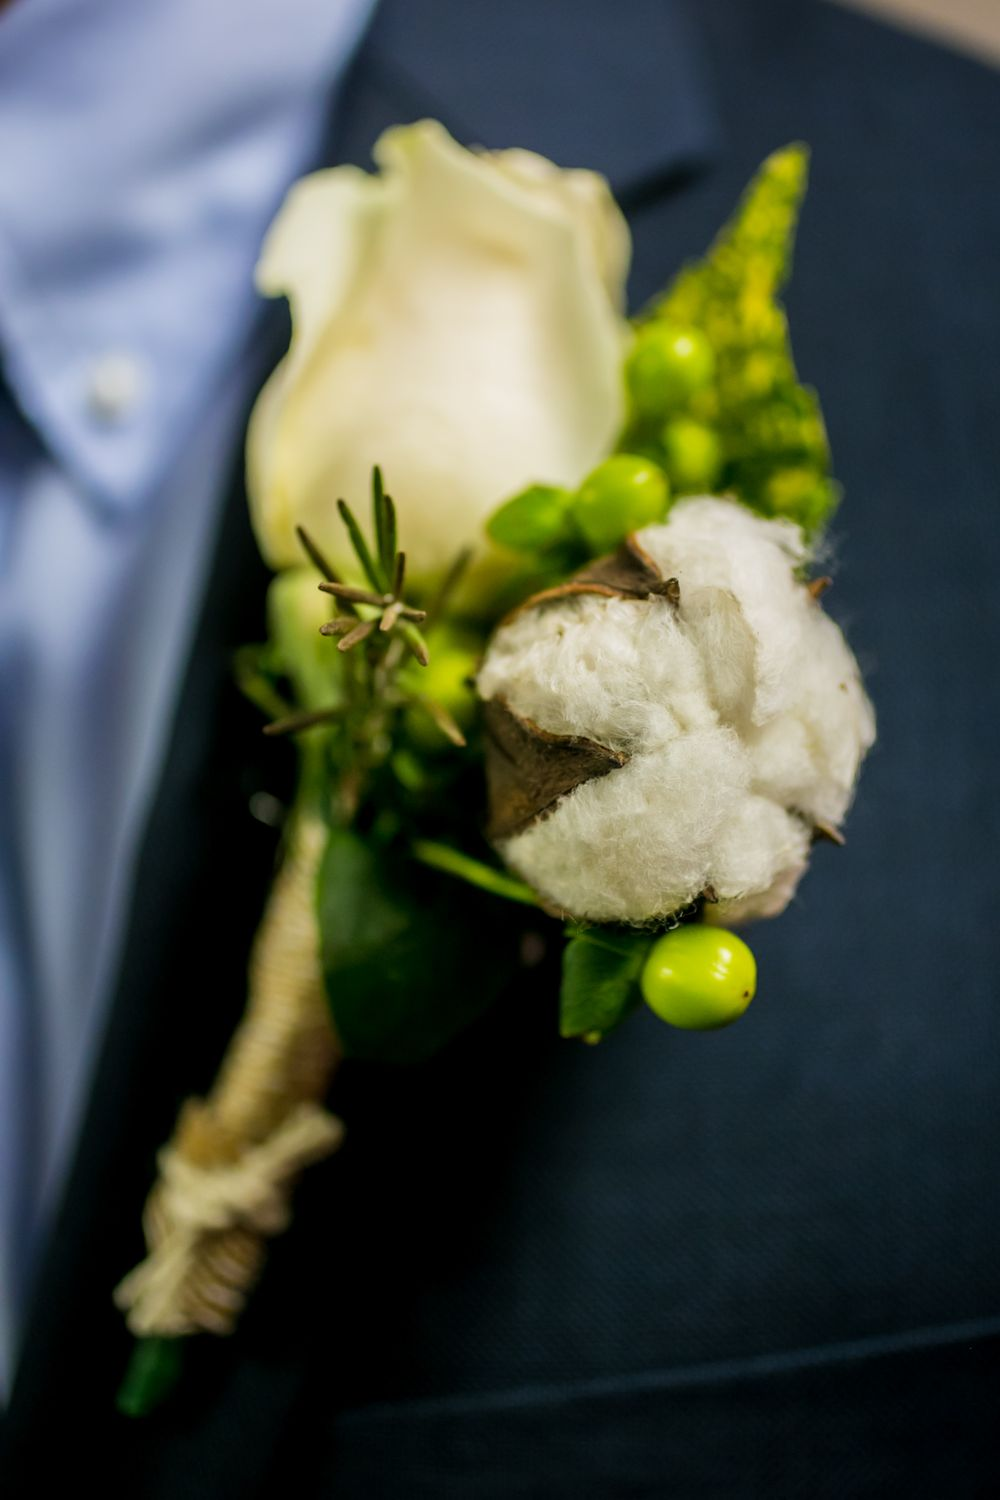 Groom Jason's boutonnière before his wedding at the South Carolina State Museum in Columbia, SC